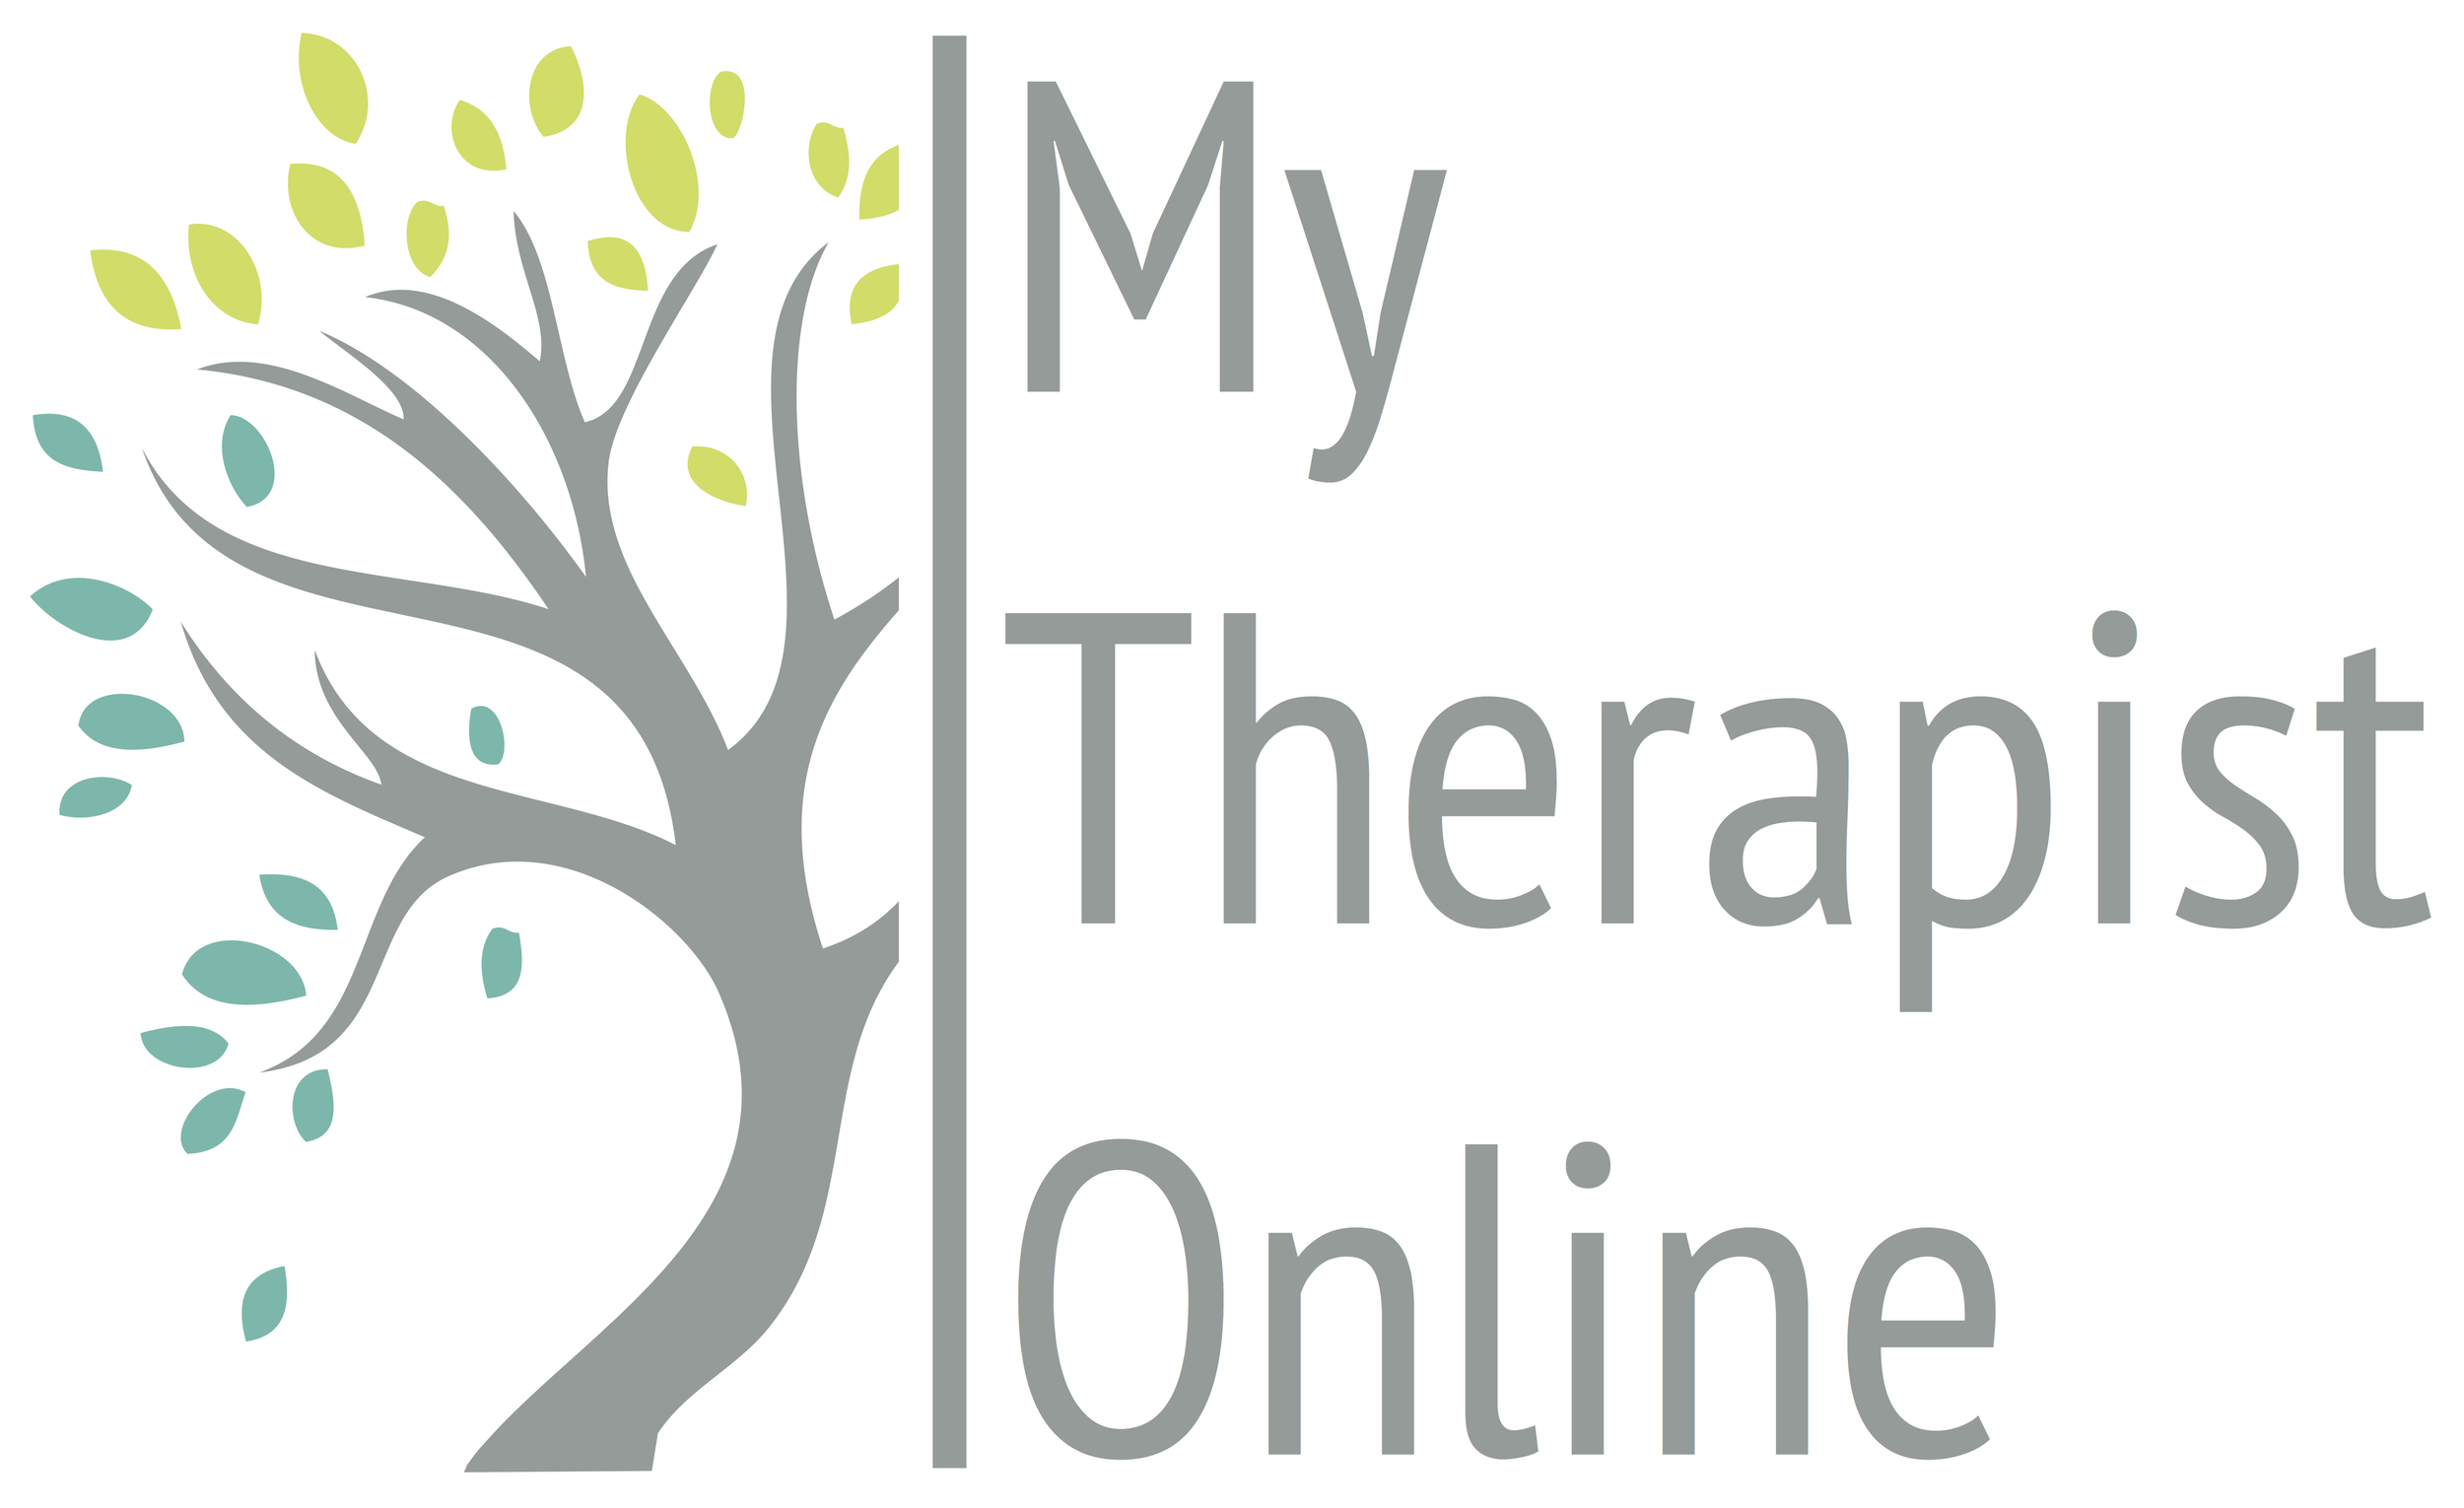 Online Therapist UK - CBT - My Therapist Online